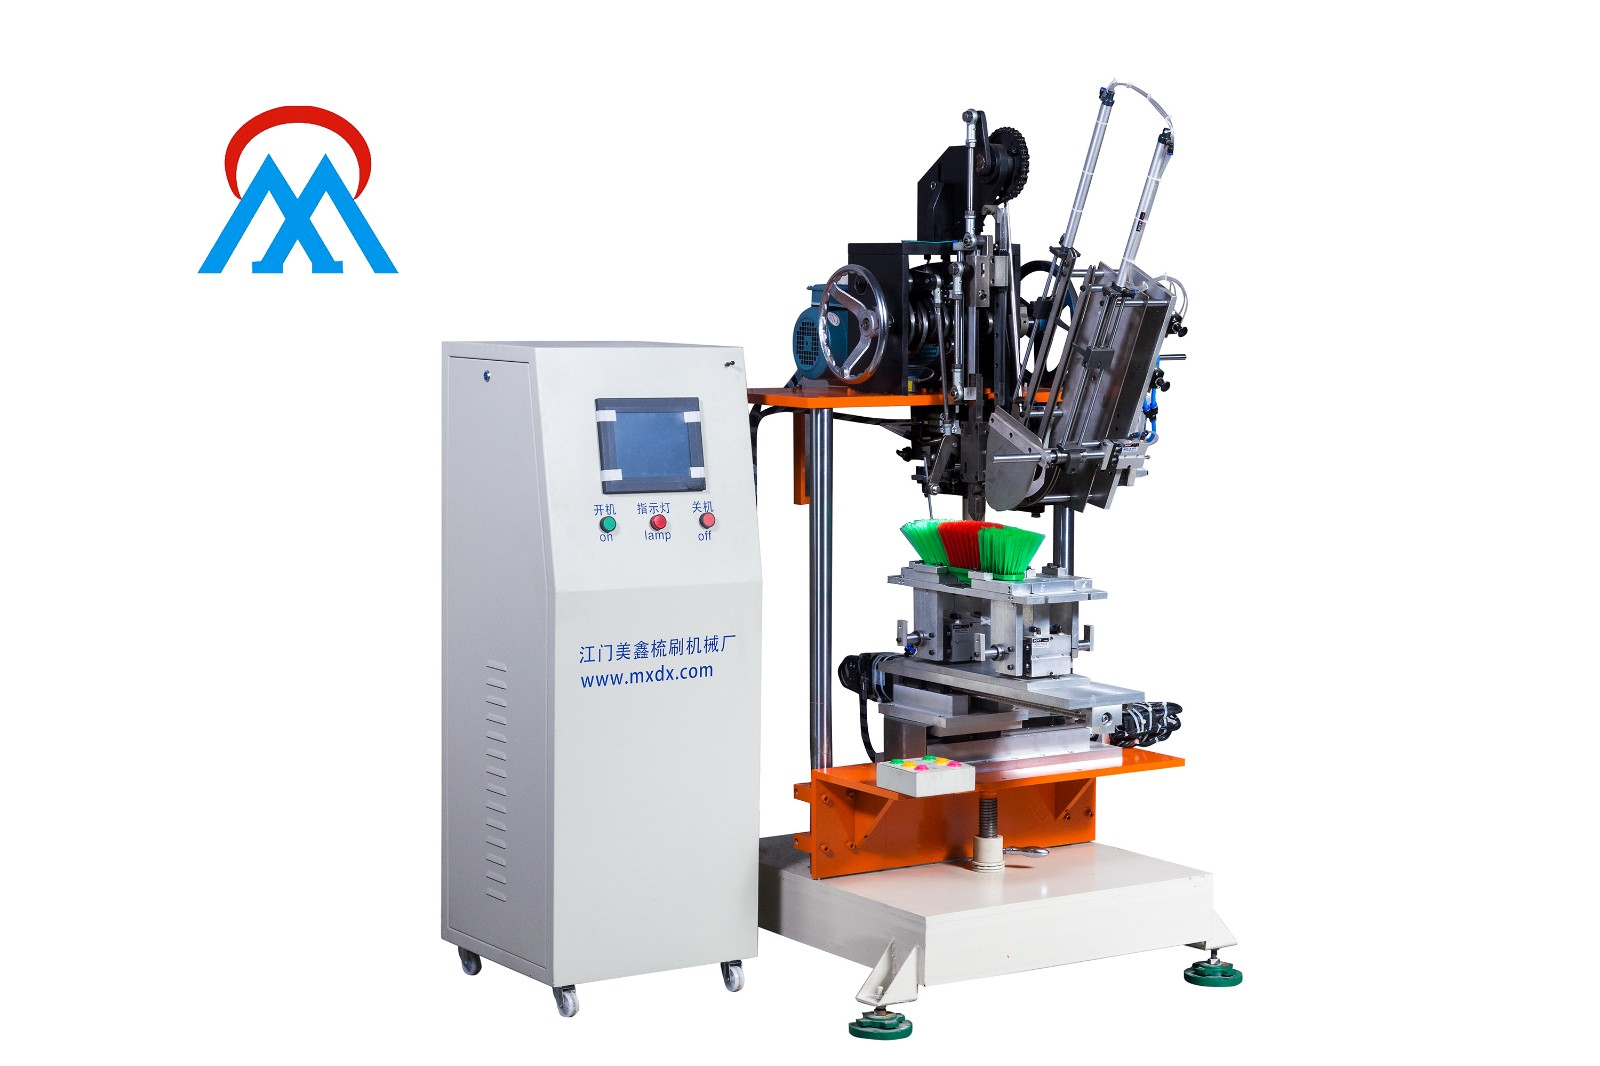 Meixin-High Quality 4 Axis 2 Color Broom Tufting Machine Factory